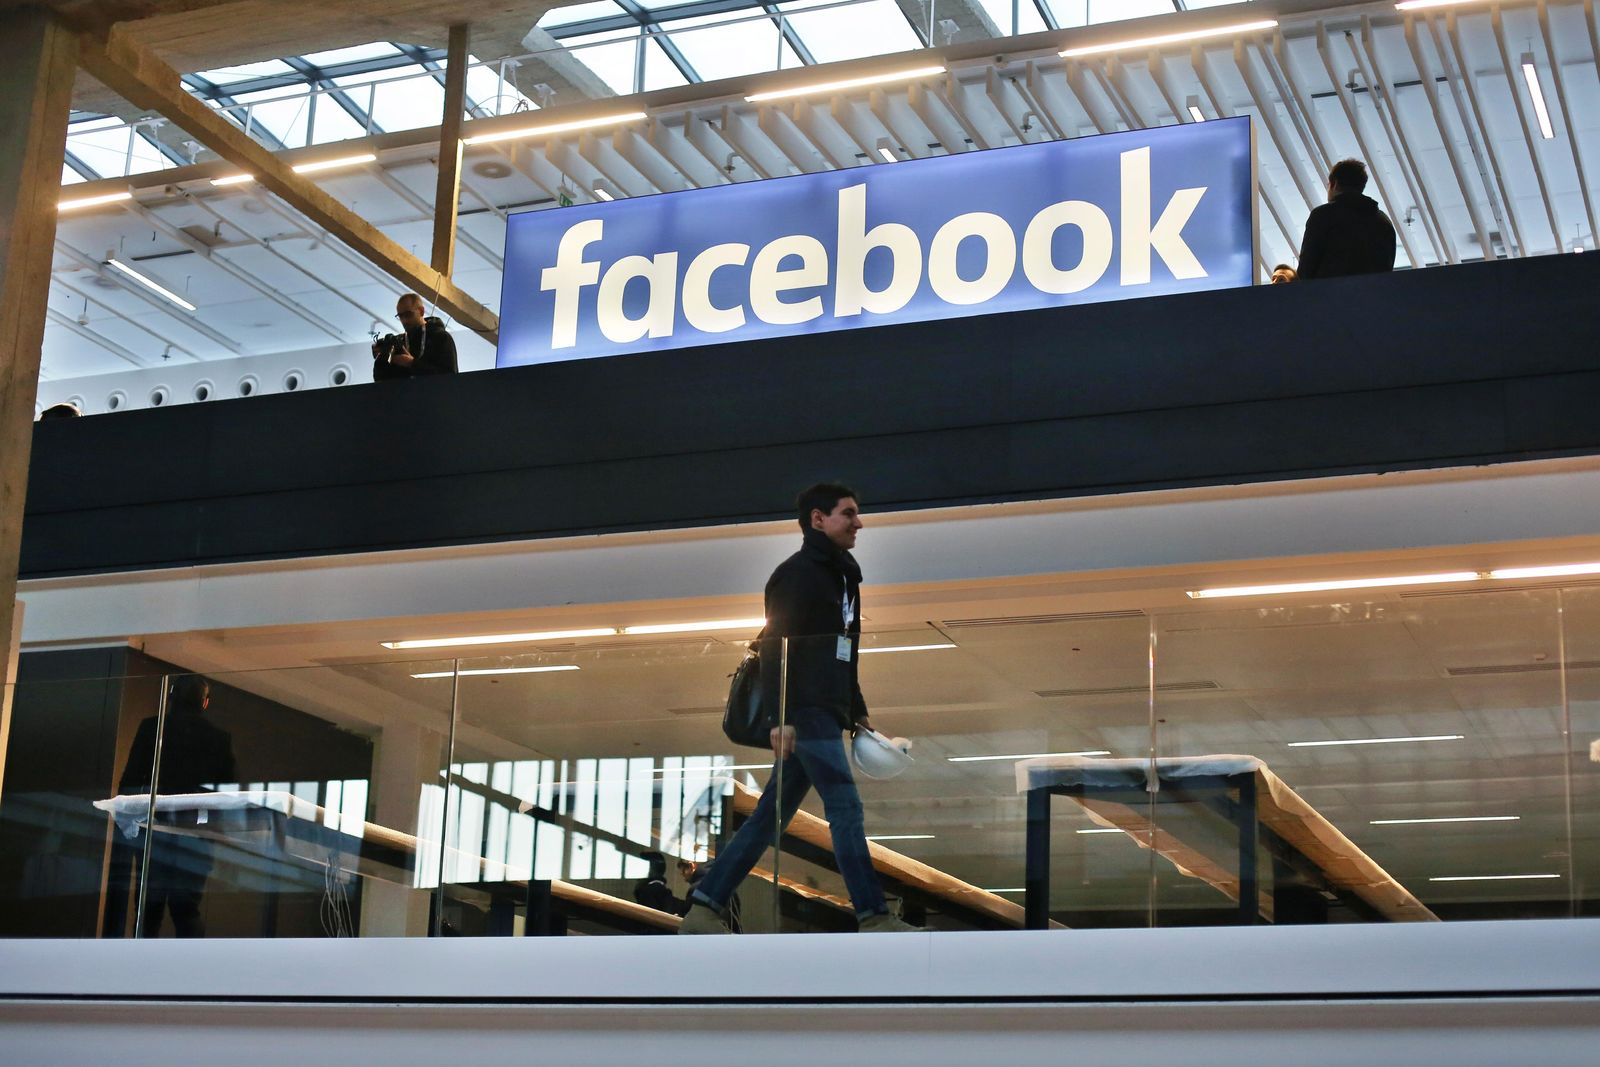 FILE - In this Jan.17, 2017 file photo, the Facebook logo is displayed in a start-up companies gathering at Paris' Station F, in Paris. France's lower house of parliament has approved a pioneering tax on internet giants like Google, Amazon and Facebook. The bill adopted Thursday by the National Assembly aims to stop multinationals from avoiding taxes by setting up headquarters in low-tax EU countries. (AP Photo/Thibault Camus, File)